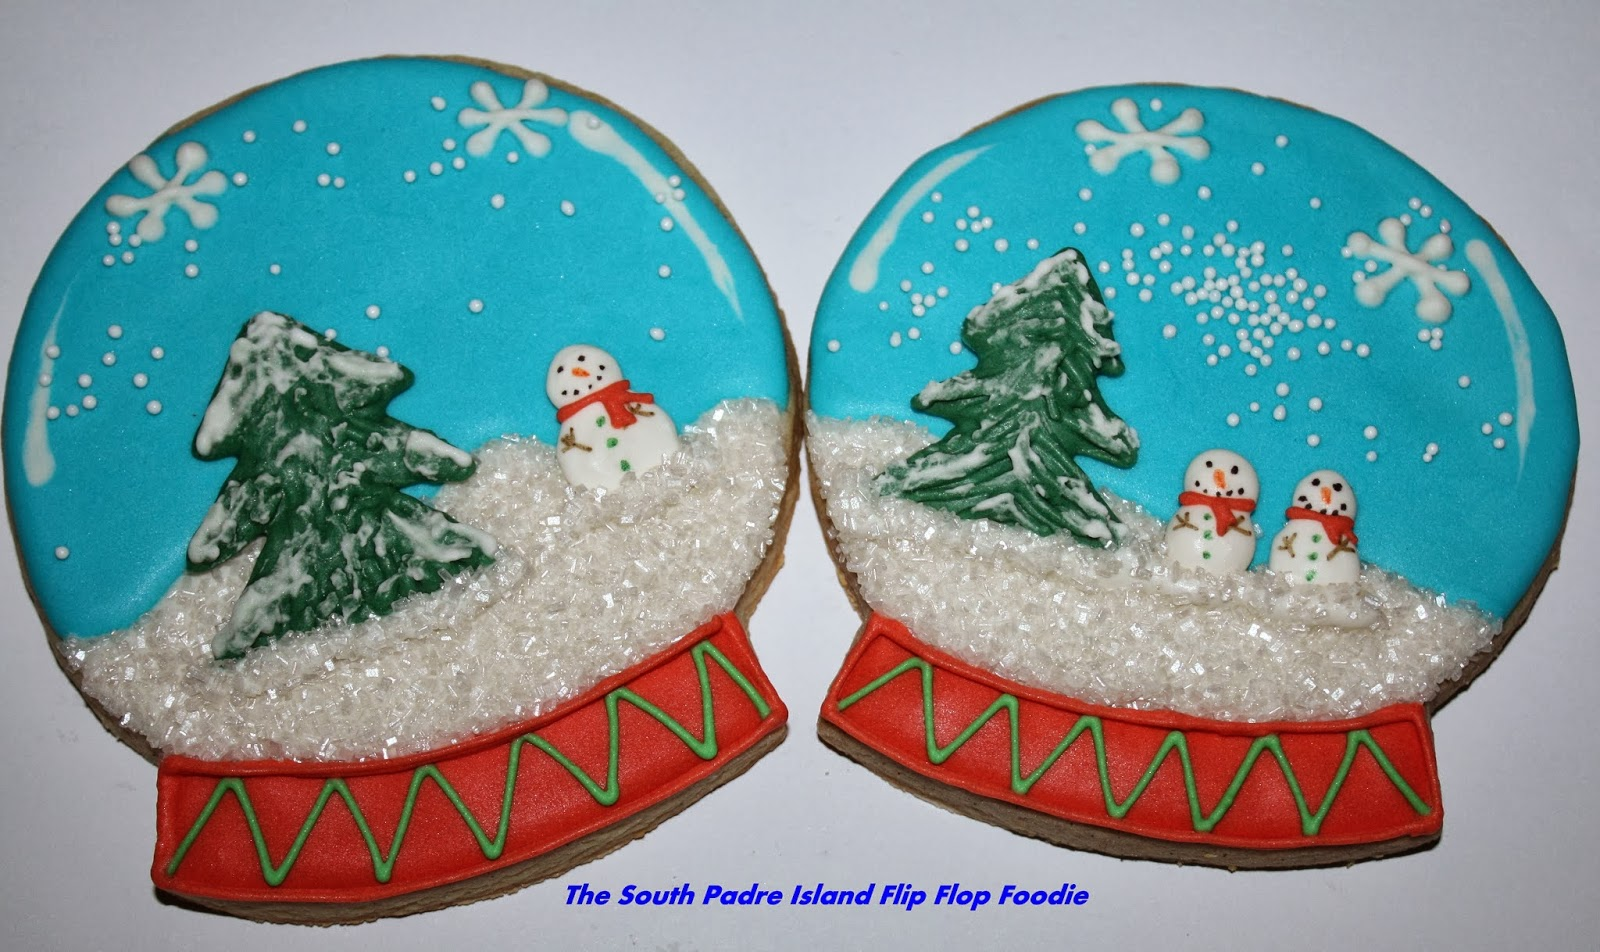 The South Padre Island Flip Flop Foodie Decorated Christmas Cookies